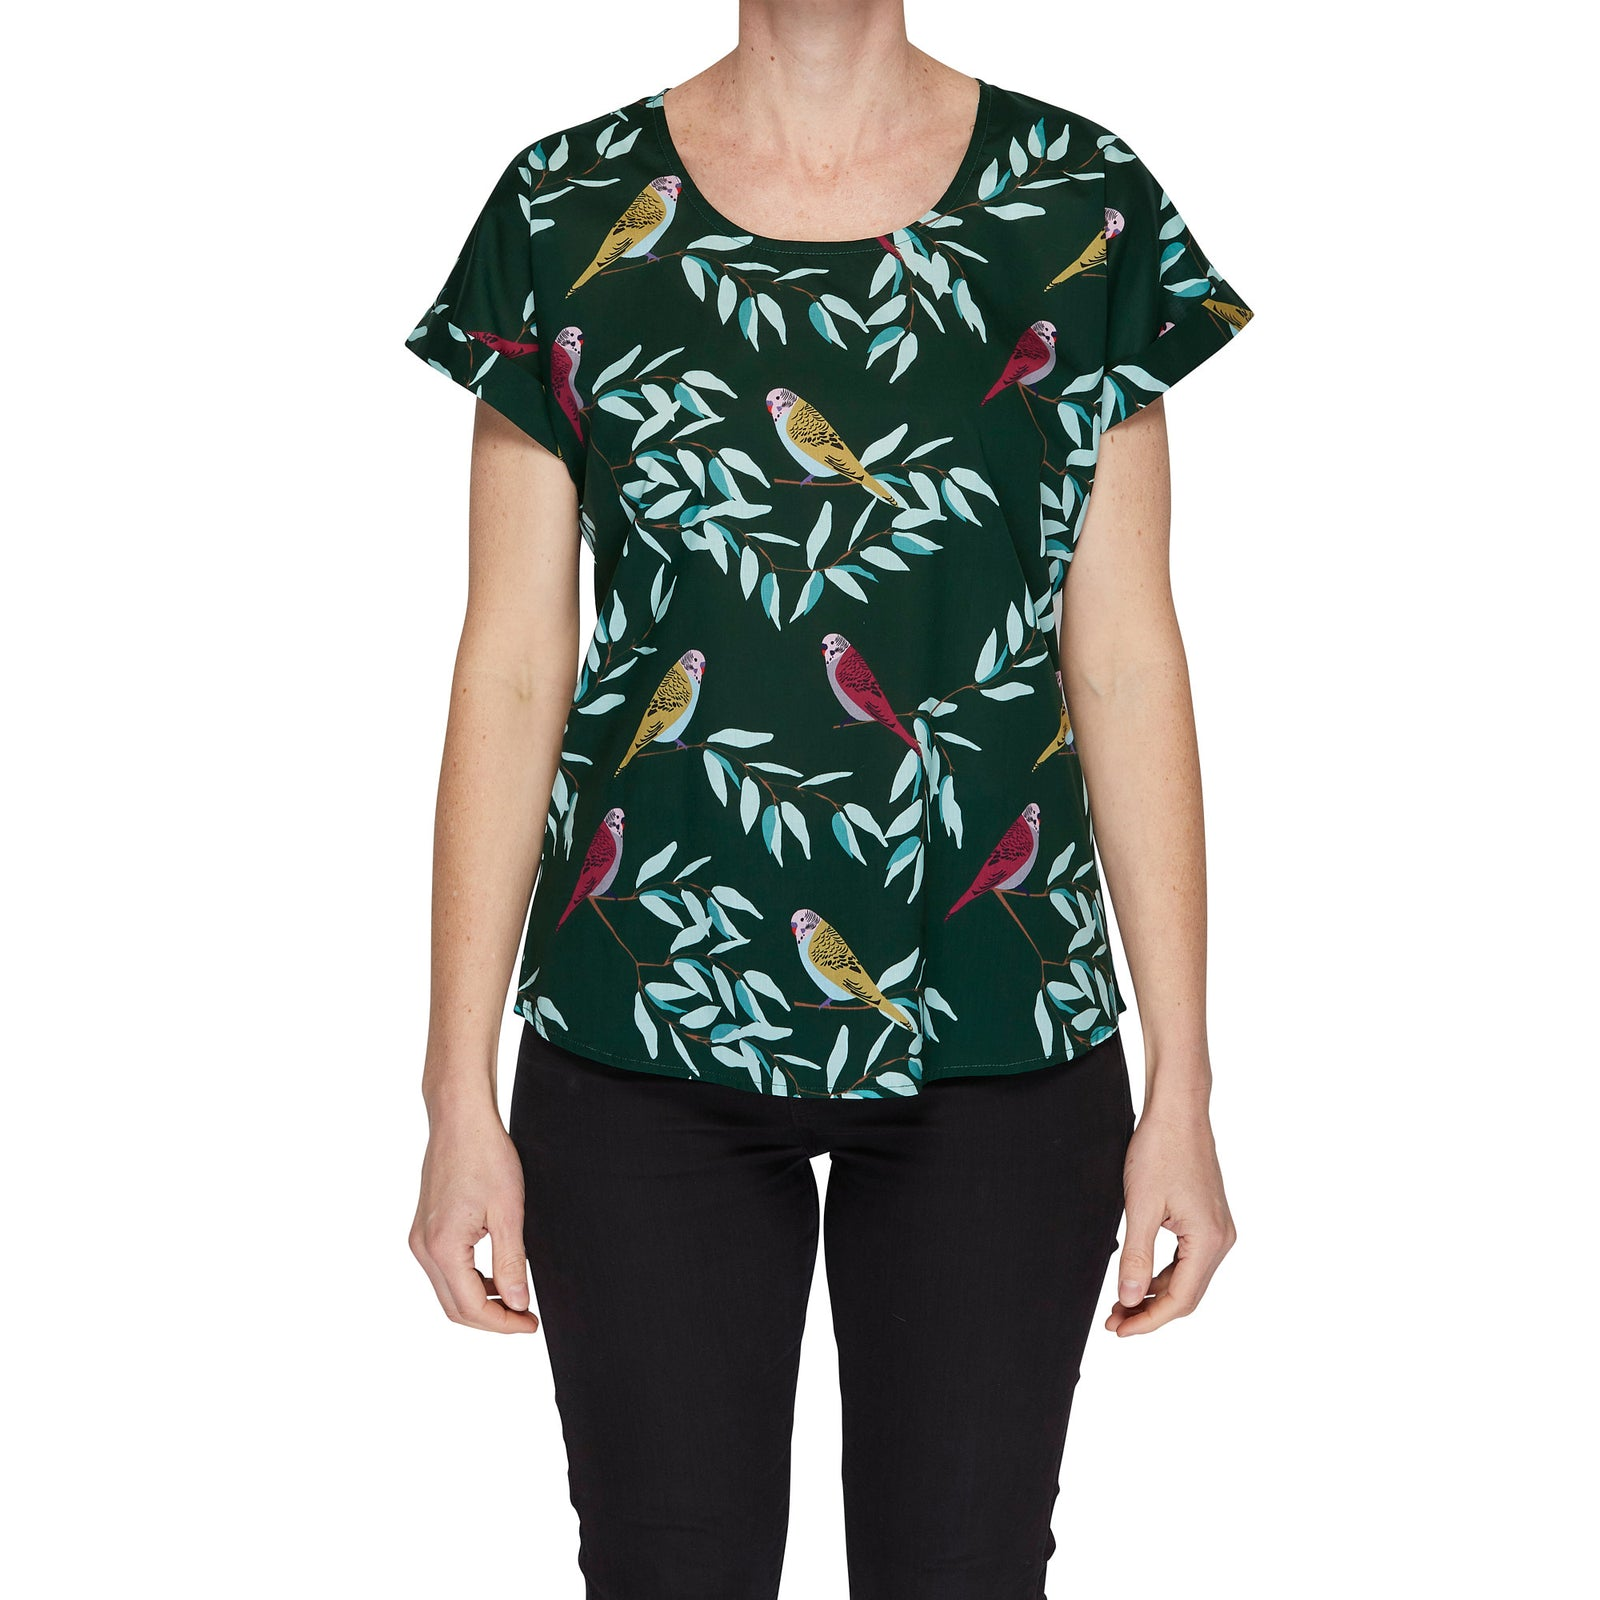 Box Tee Blouse - Tree Top